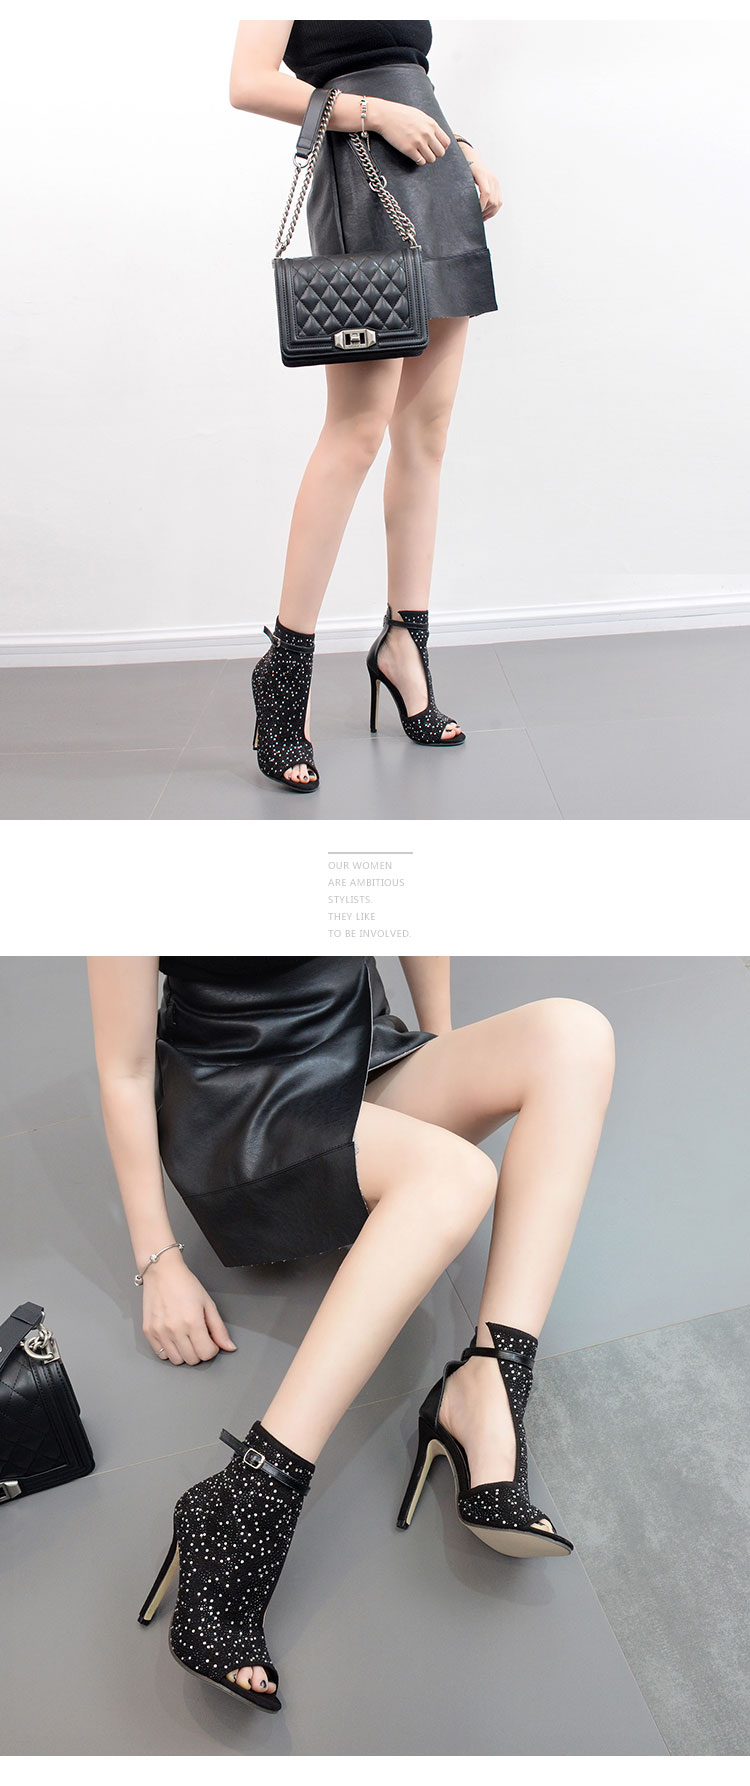 2018 women high heel shoes (8)